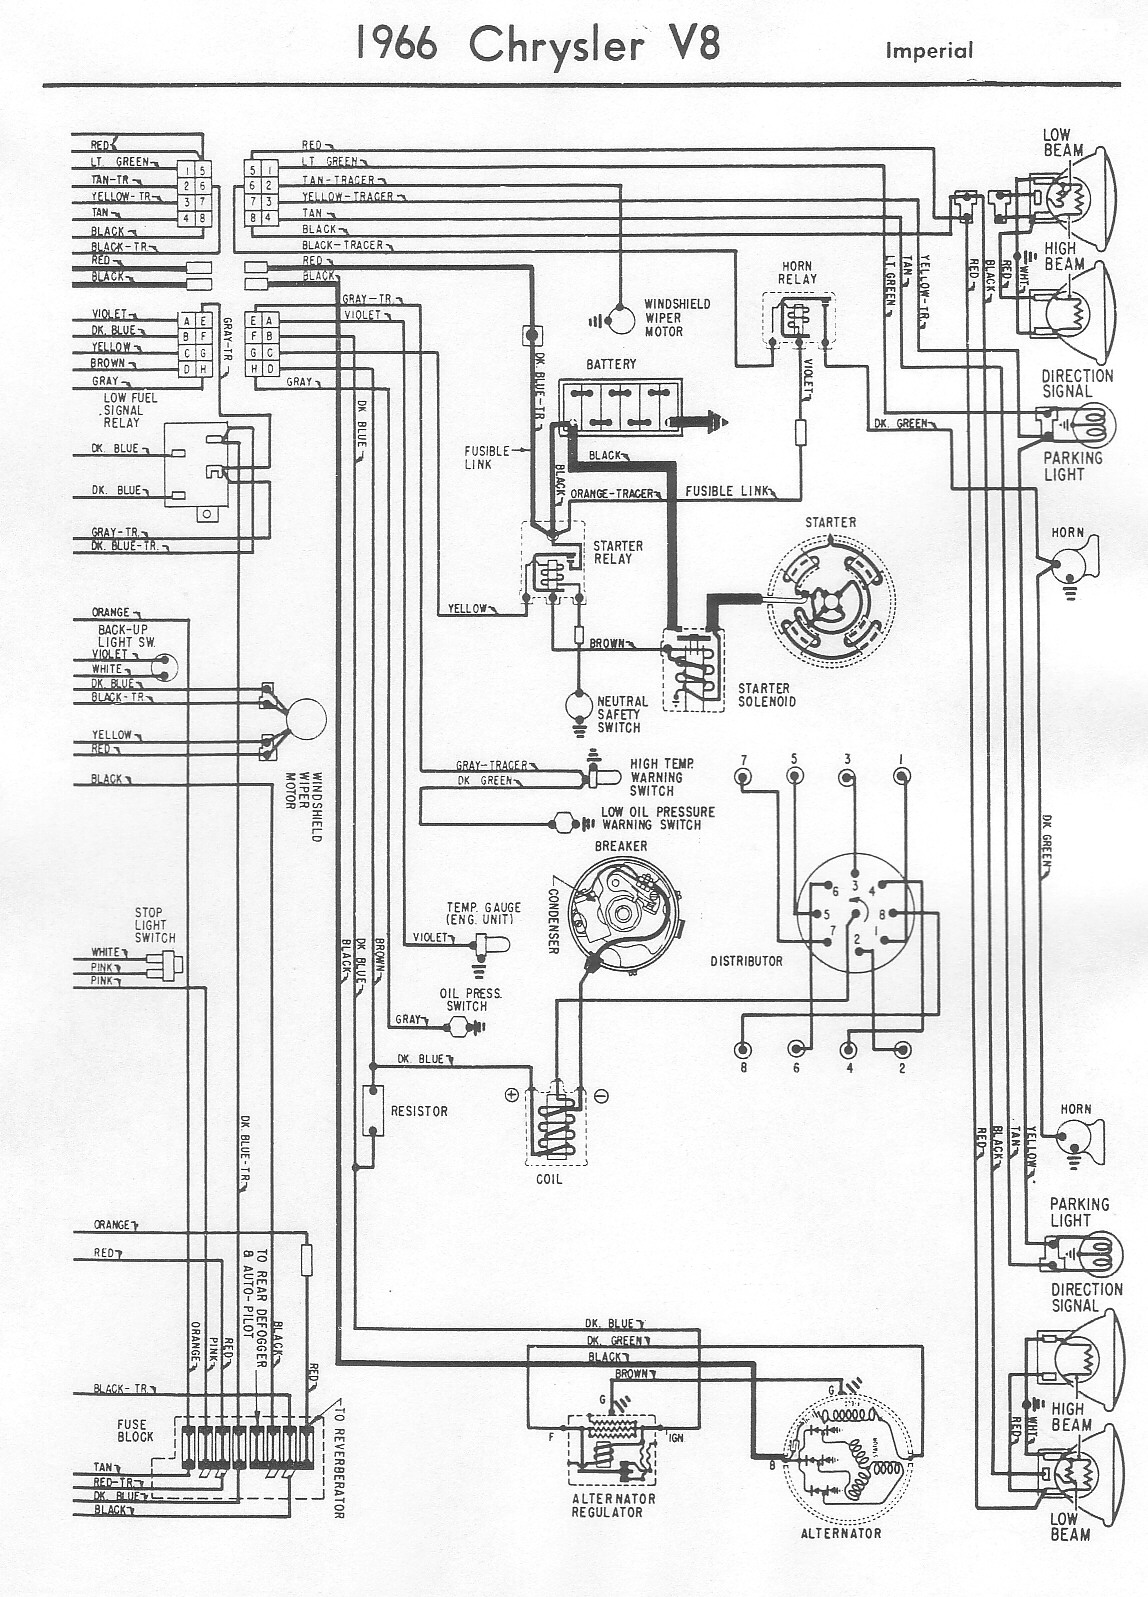 astounding neon sign wiring diagram contemporary best image wire 98 neon wiring diagram  2000 eclipse wiring diagram